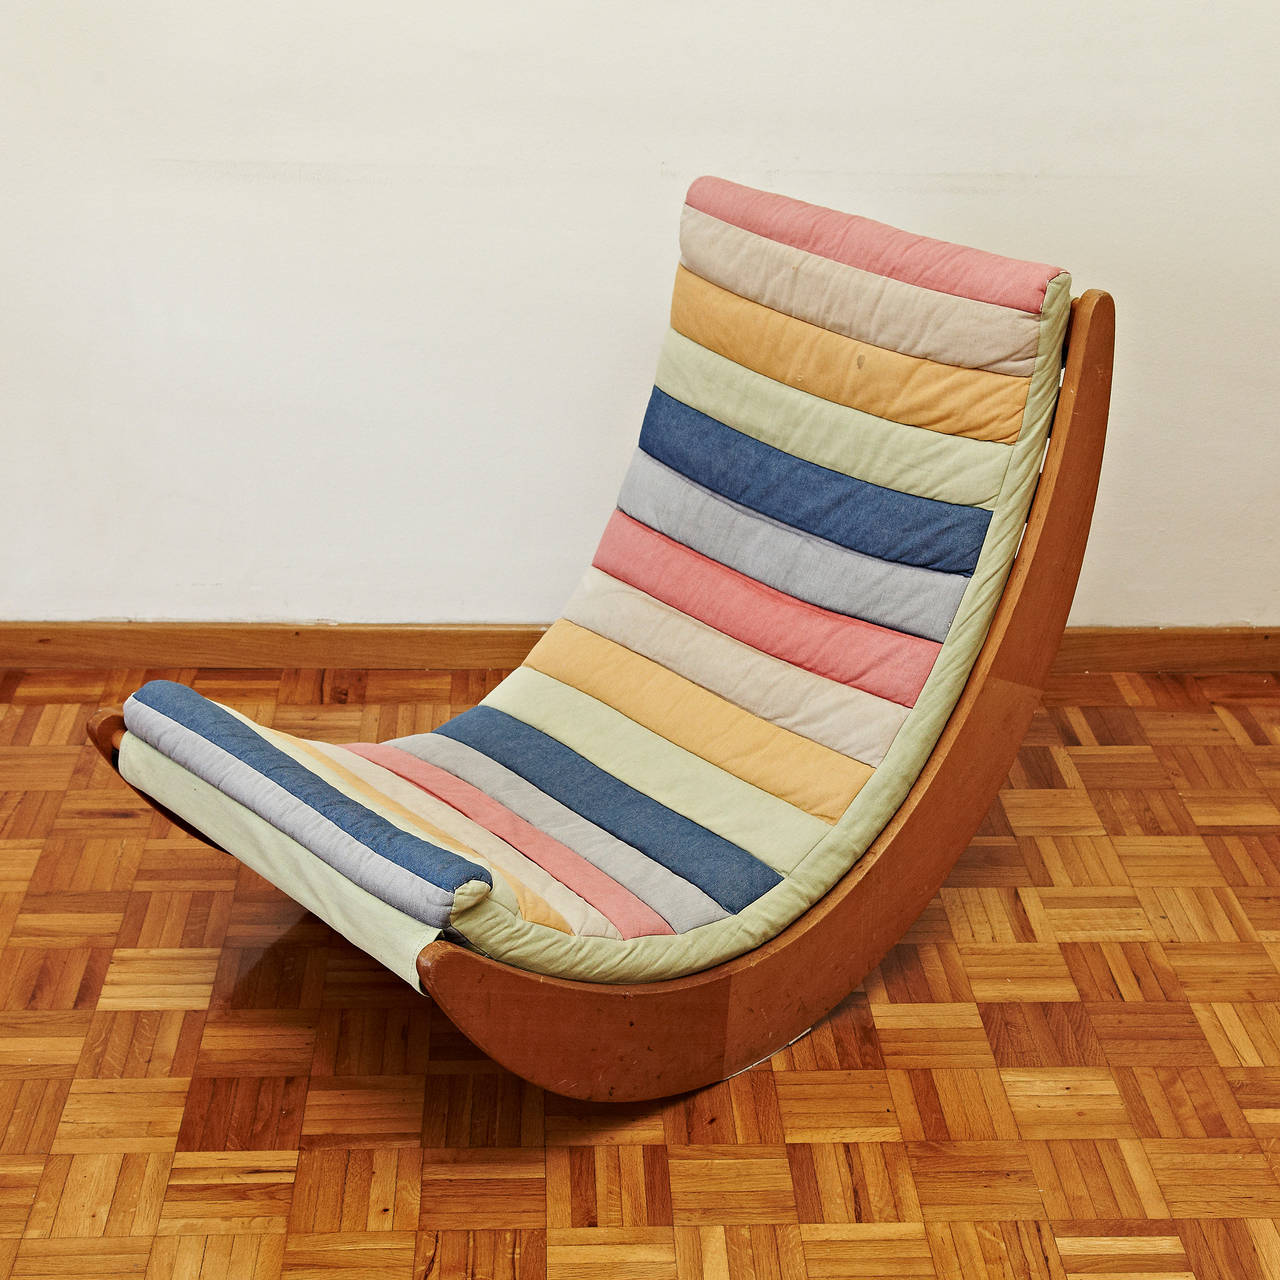 Verner panton relaxer chair for rosenthal circa 1970 at - Chaise verner panton ...